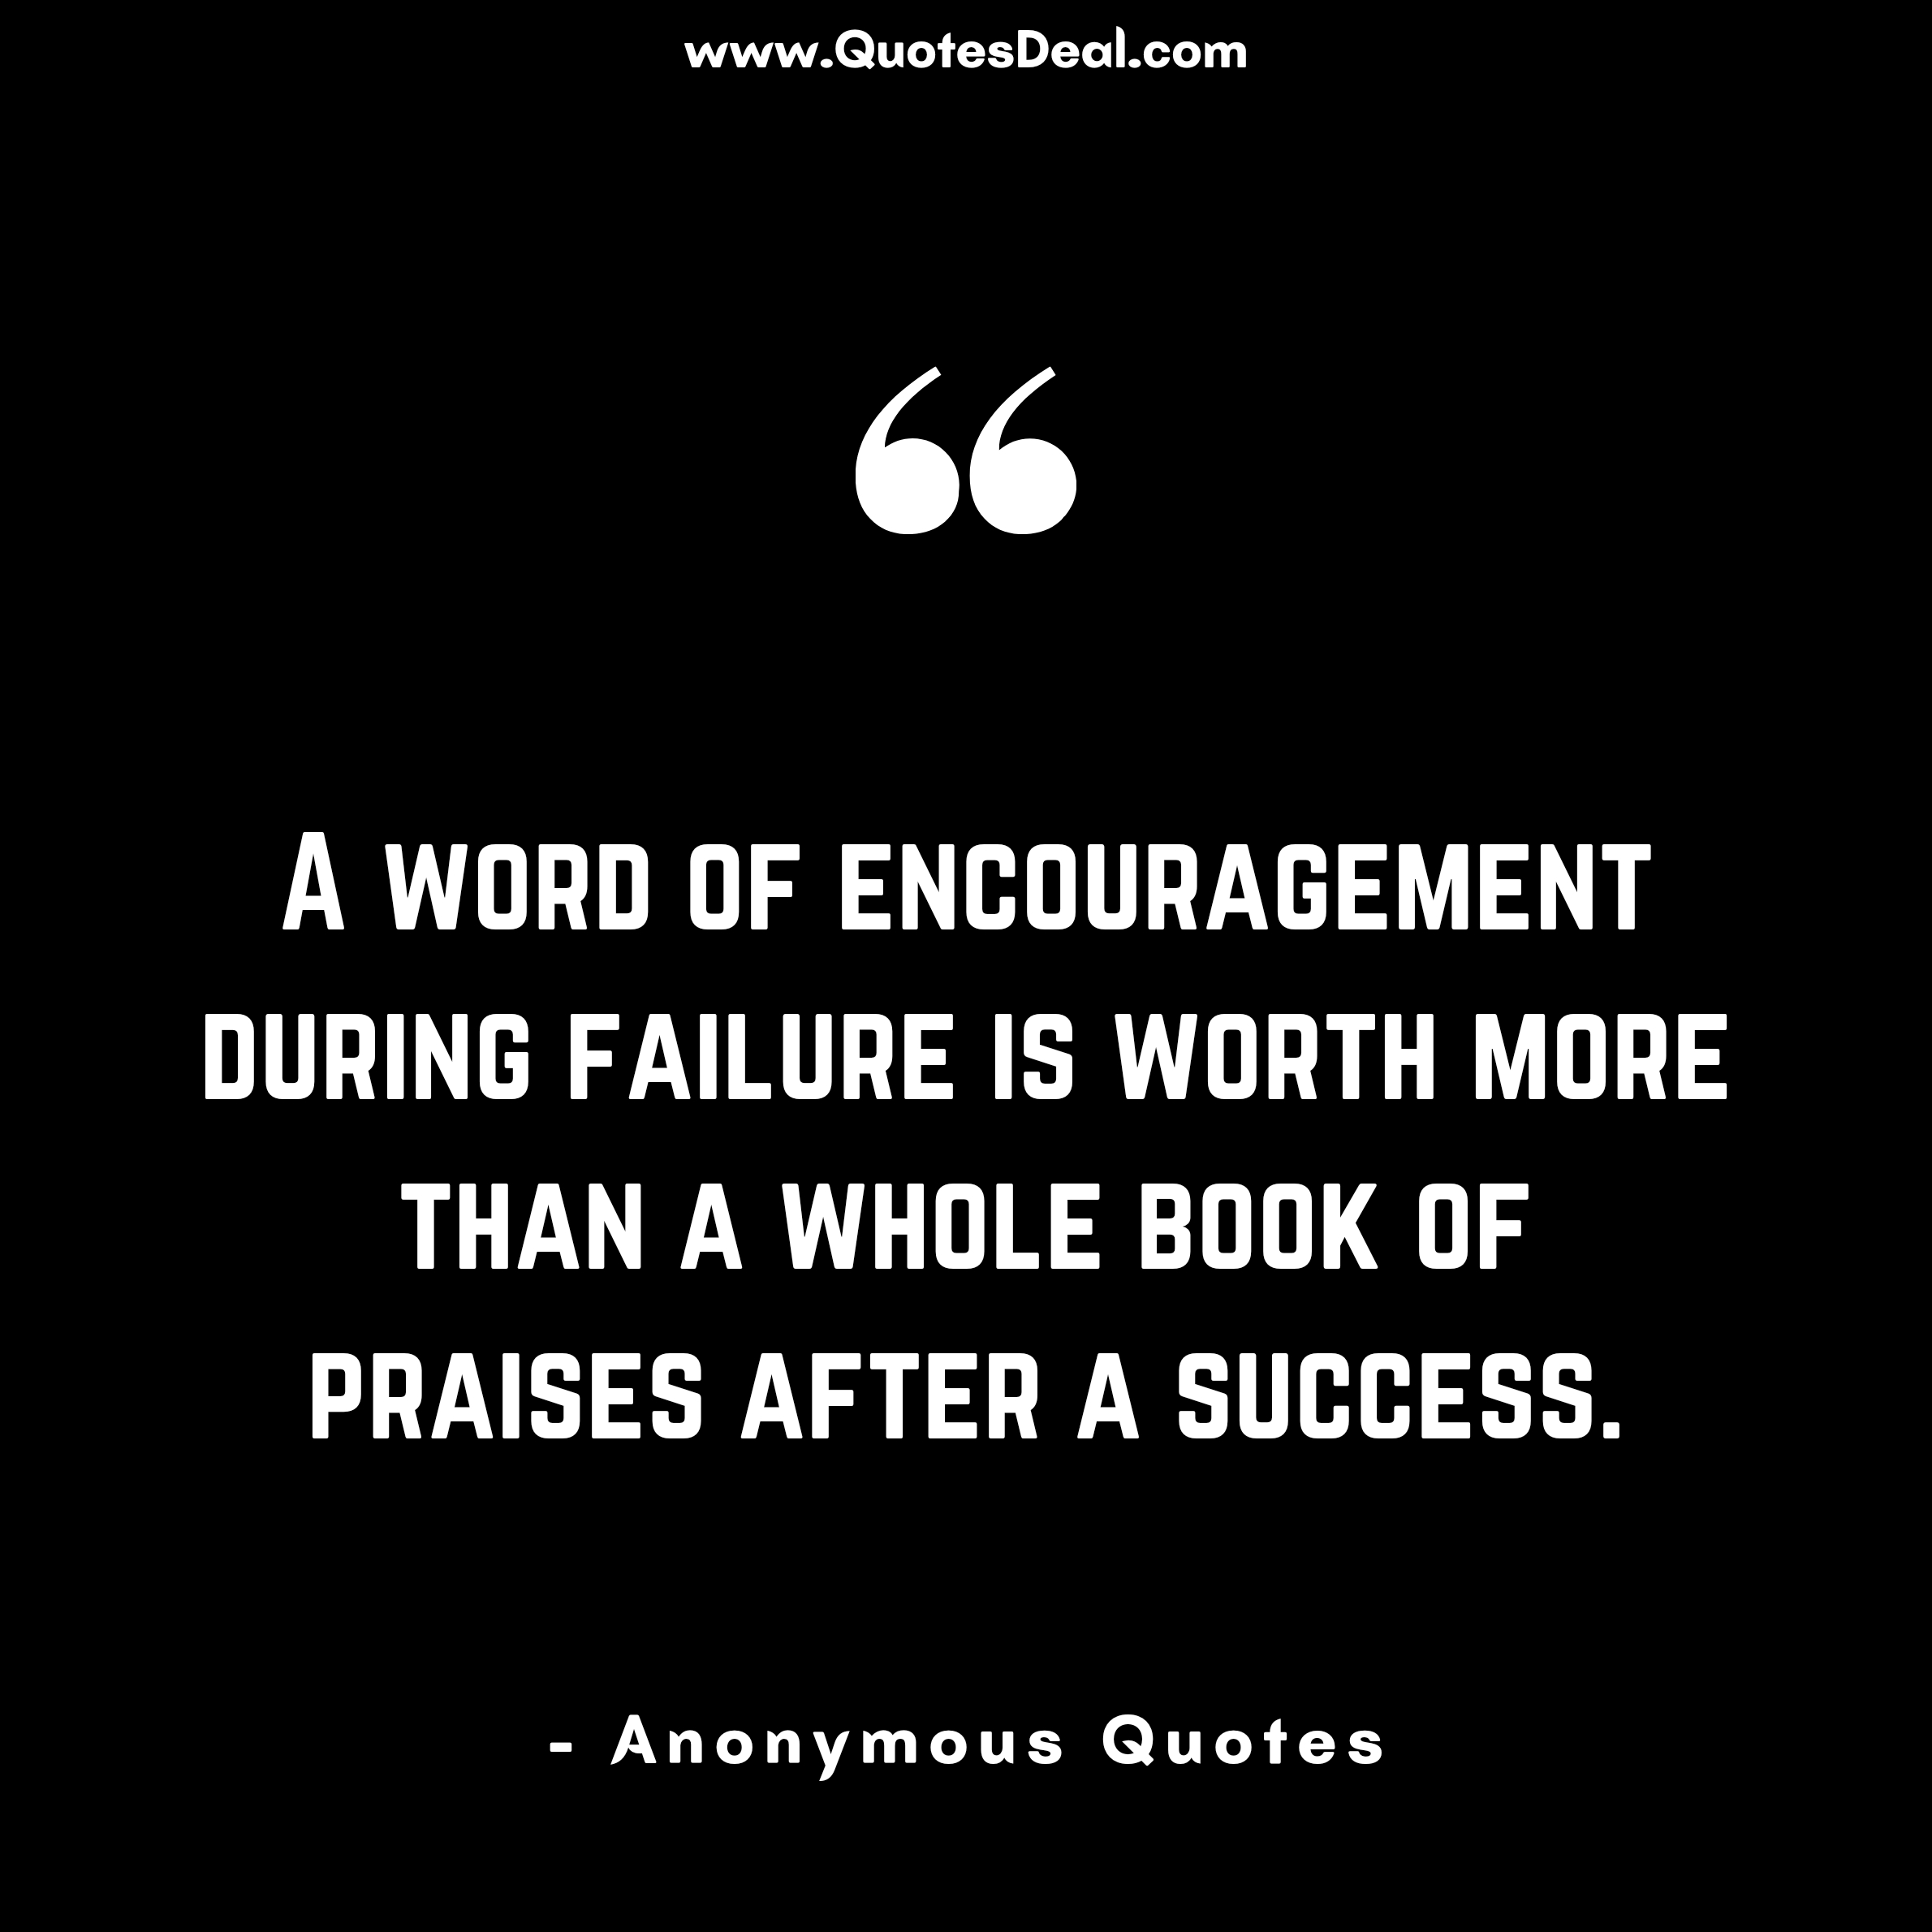 A word of encouragement during failure